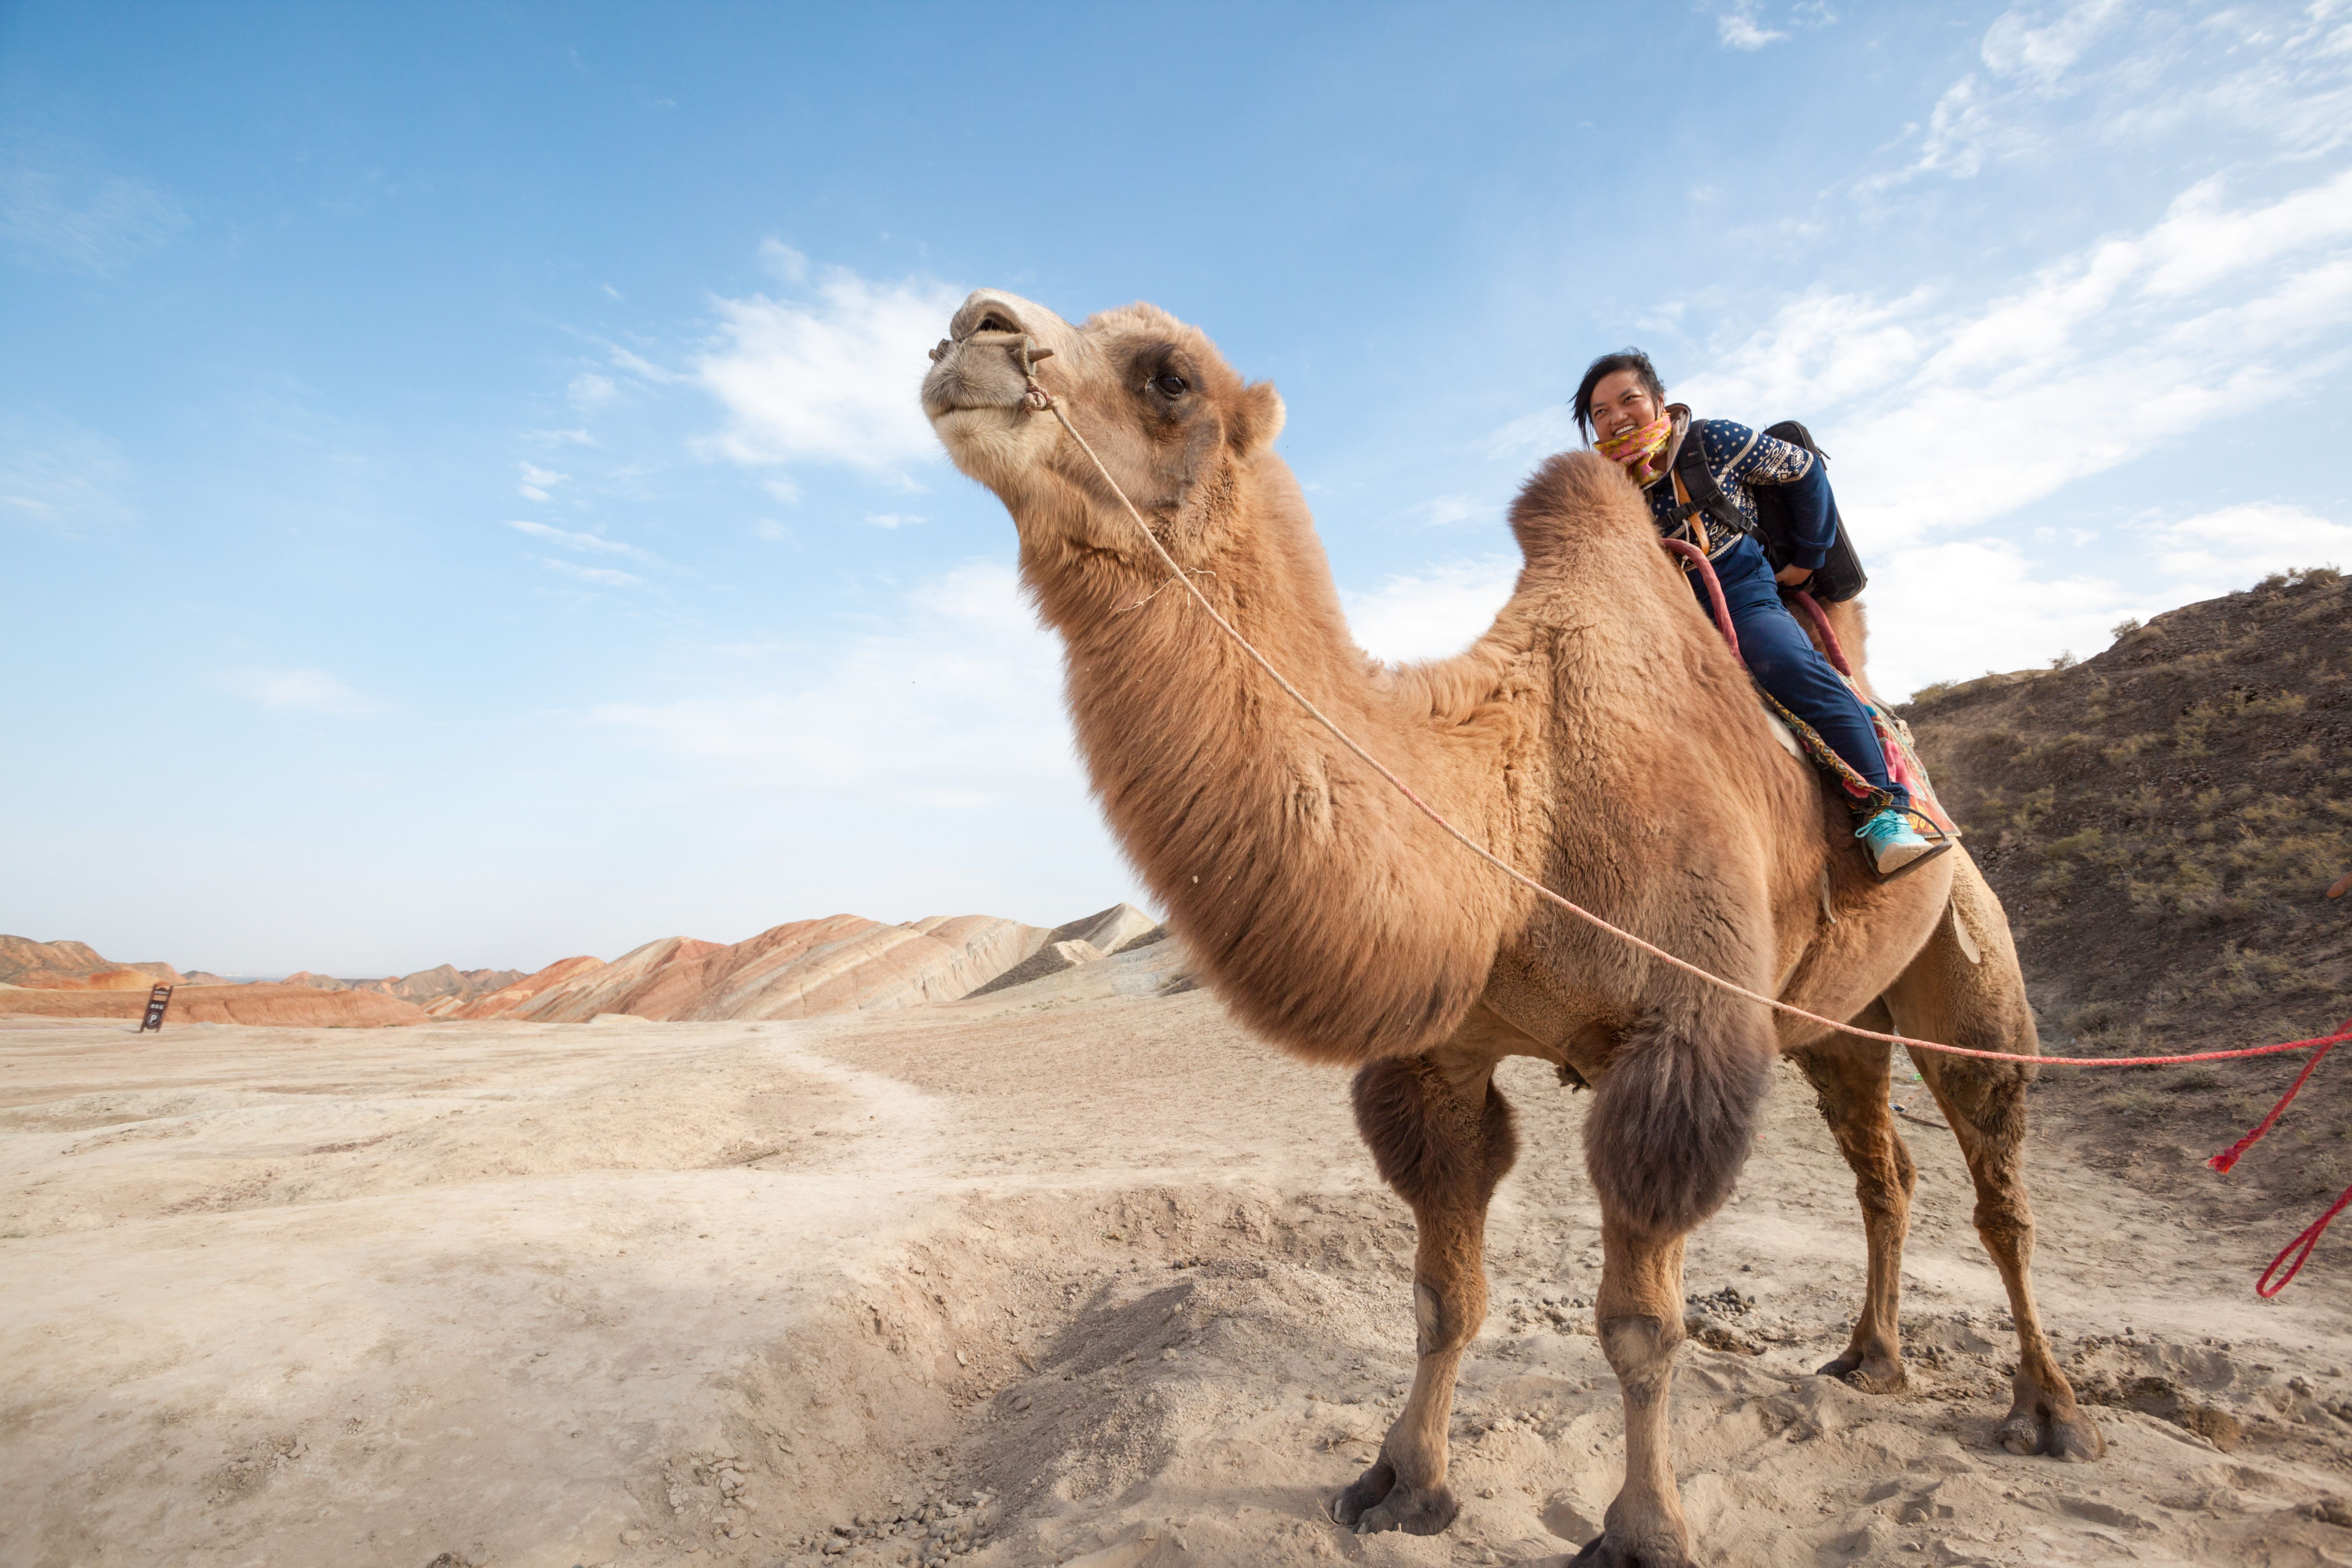 Young woman riding a camel in the desert of China